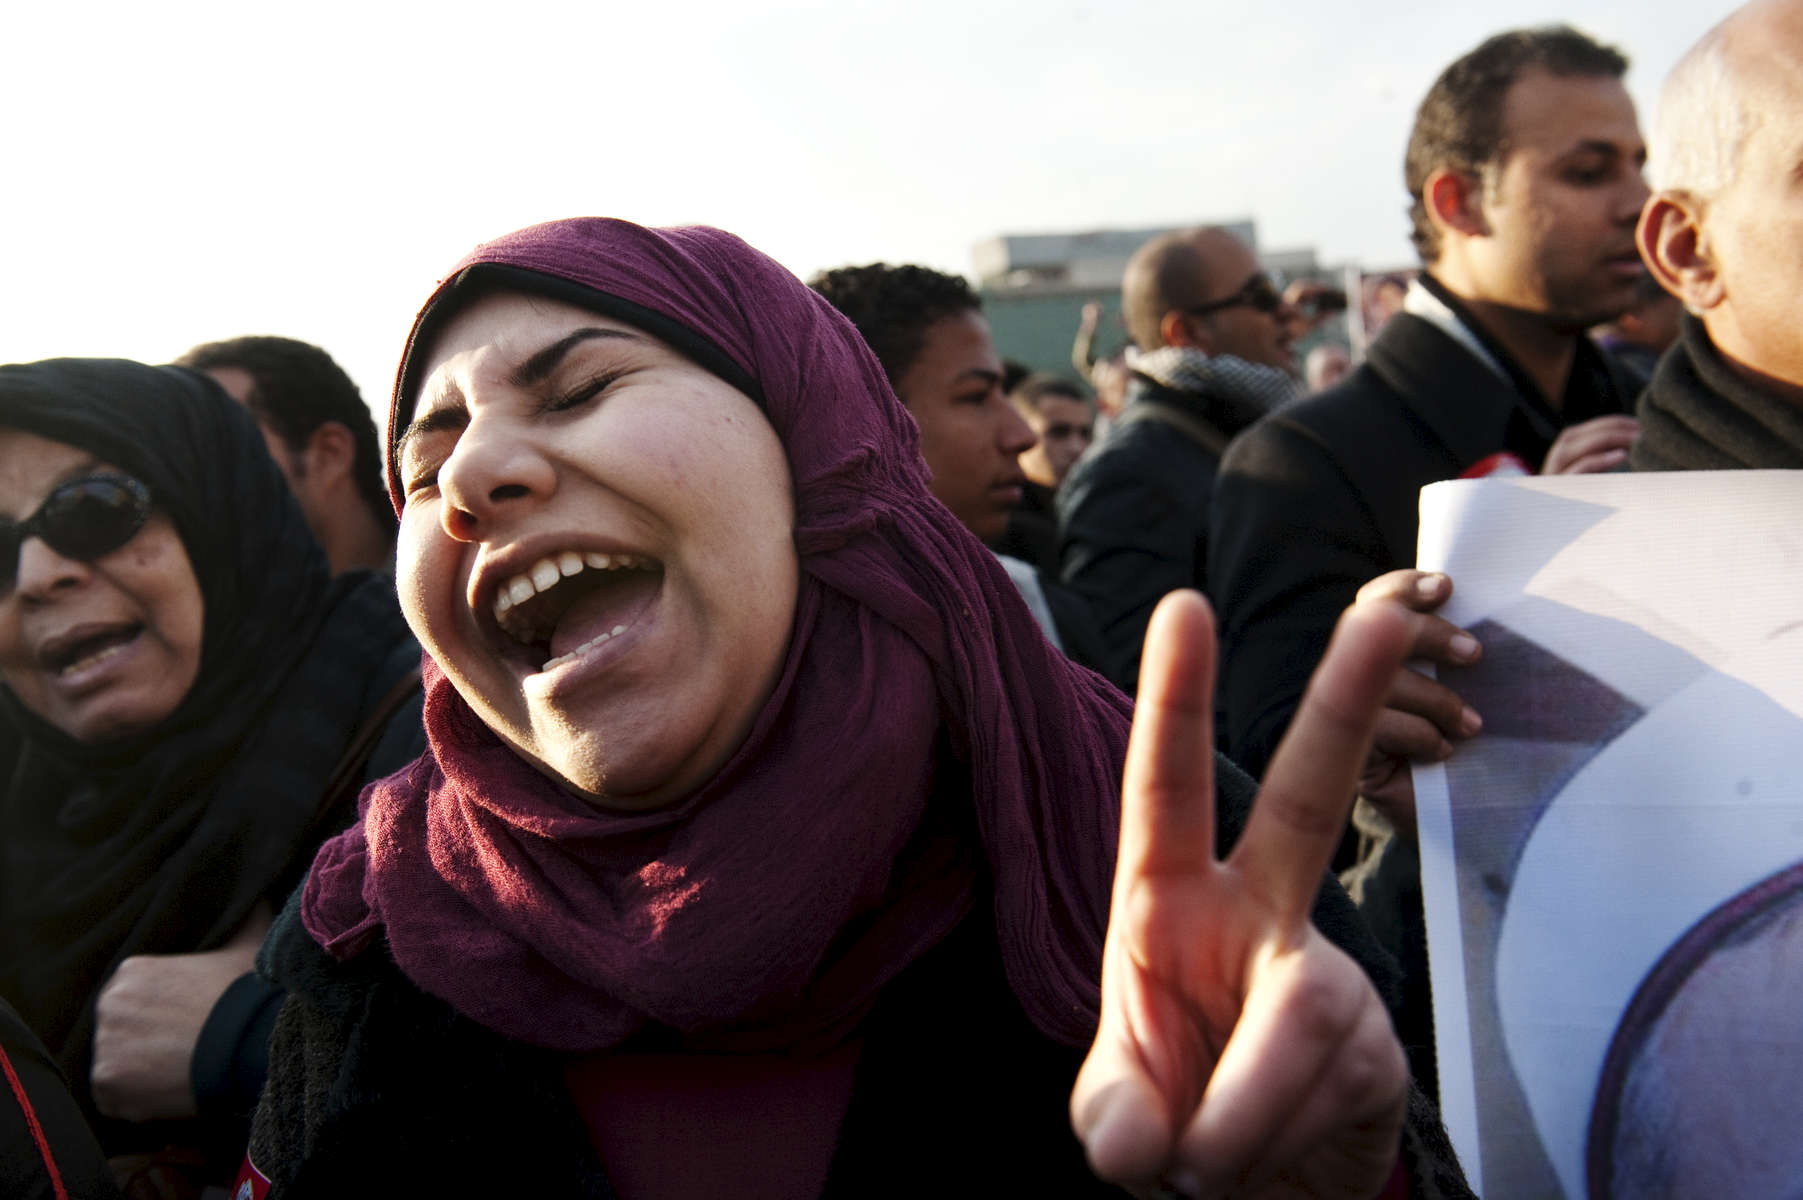 CAIRO, EGYPT - JANUARY 20:   Several neighborhood groups converged on Tahrir Square today with the hopes of energizing the people in preparation for the one year anniversary of the 18-day uprising that ousted former President Hosni Mubarak., on January 25, 2012. A demonstrator chants during the rally honoring those killed during the revolution.  (Amanda Voisard)